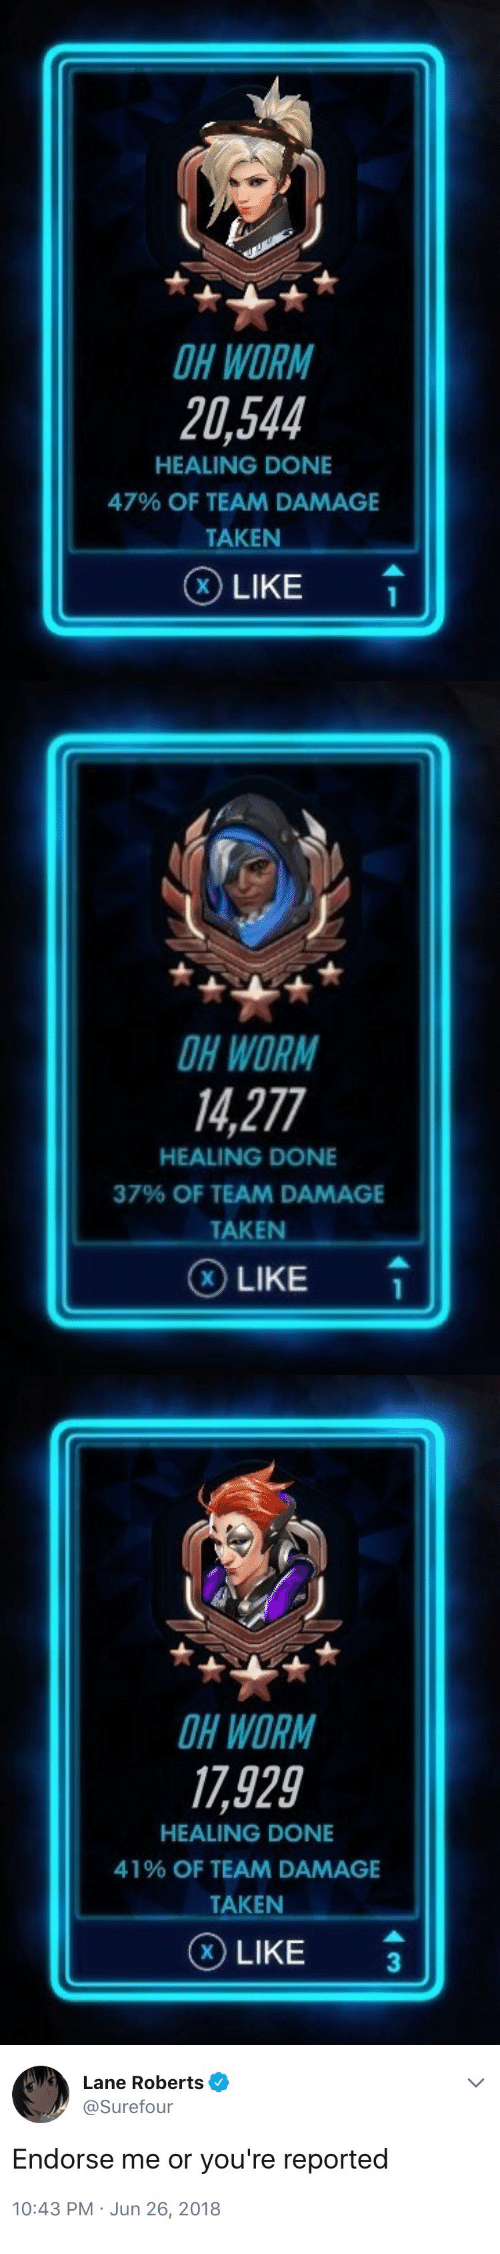 roberts: H WORM  20,544  HEALING DONE  47% OF TEAM DAMAGE  TAKEN  ⓧ LIKE   H WORM  14,277  HEALING DONE  37% OF TEAM DAMAGE  TAKEN  LIKE   H WORM  17,929  HEALING DONE  41% OF TEAM DAMAGE  TAKEN  ⓧ LIKE   Lane Roberts  @Surefour  Endorse me or you're reported  10:43 PM Jun 26, 2018